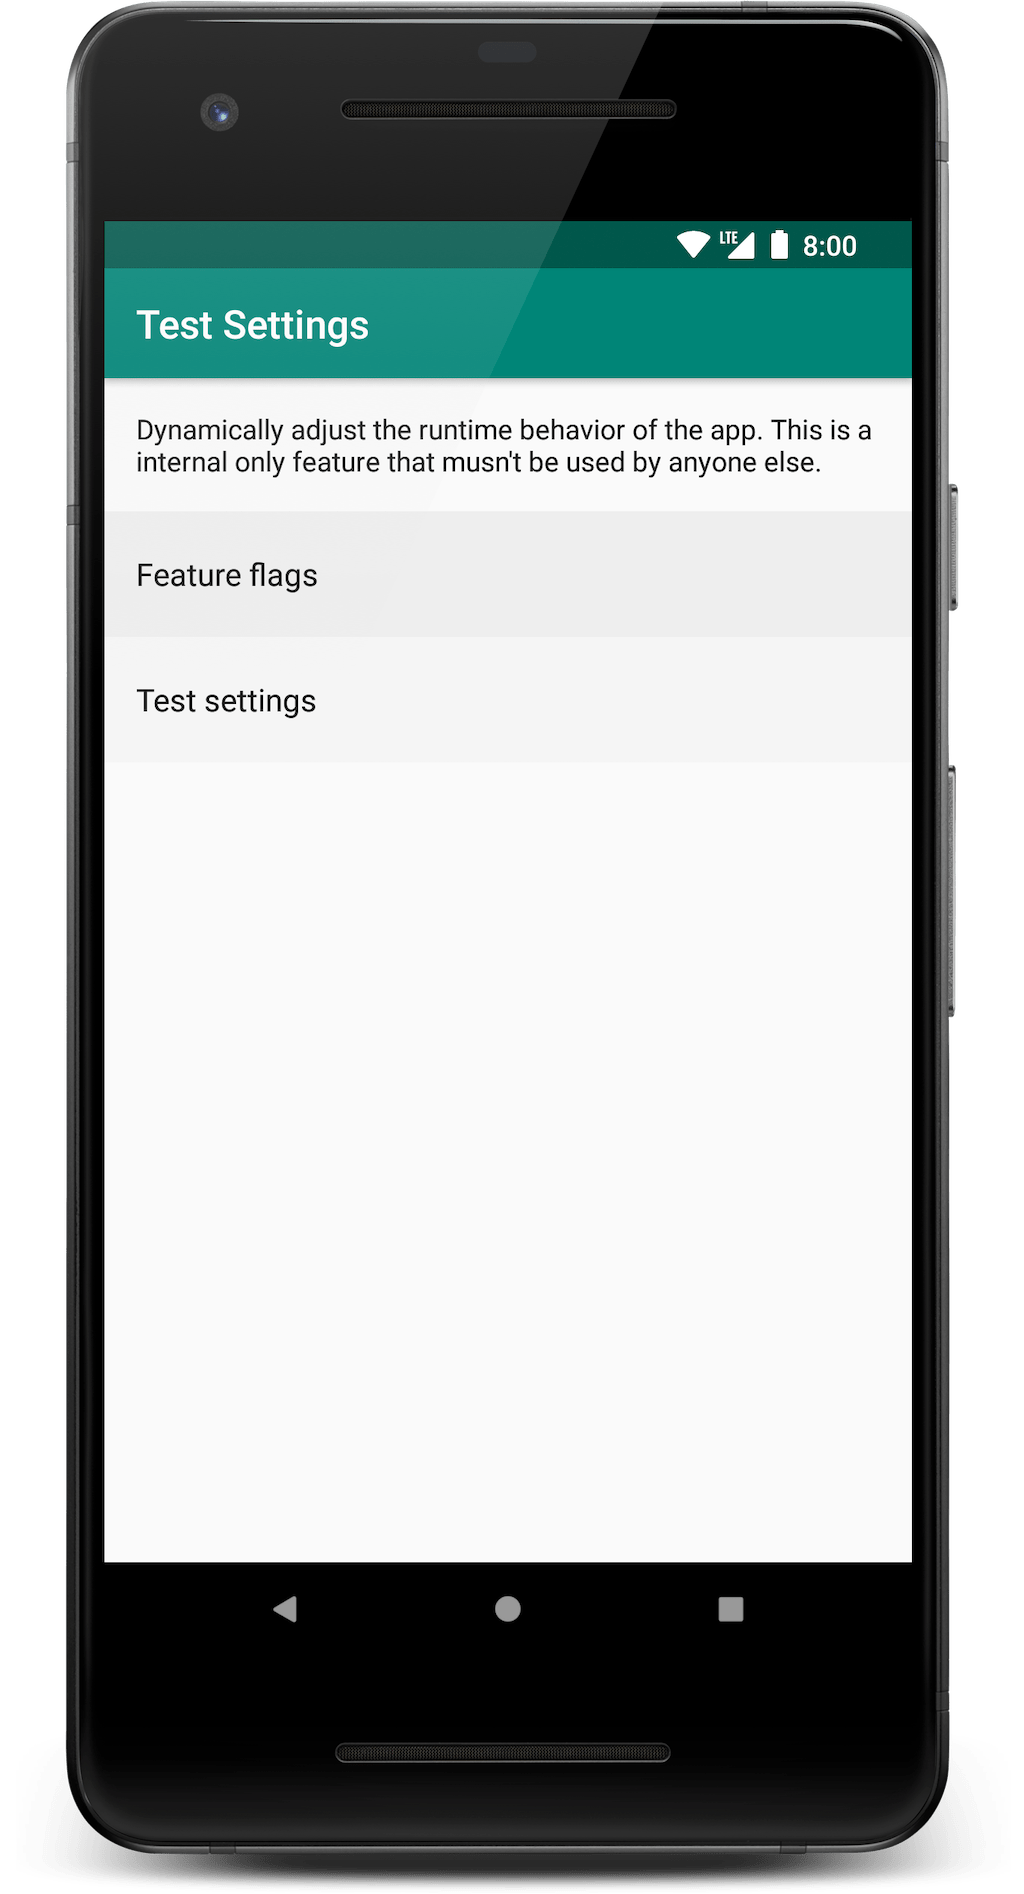 Feature flags allow to toggle features on or off, whereas test stettings allow to dynamically configure the behavior of the app